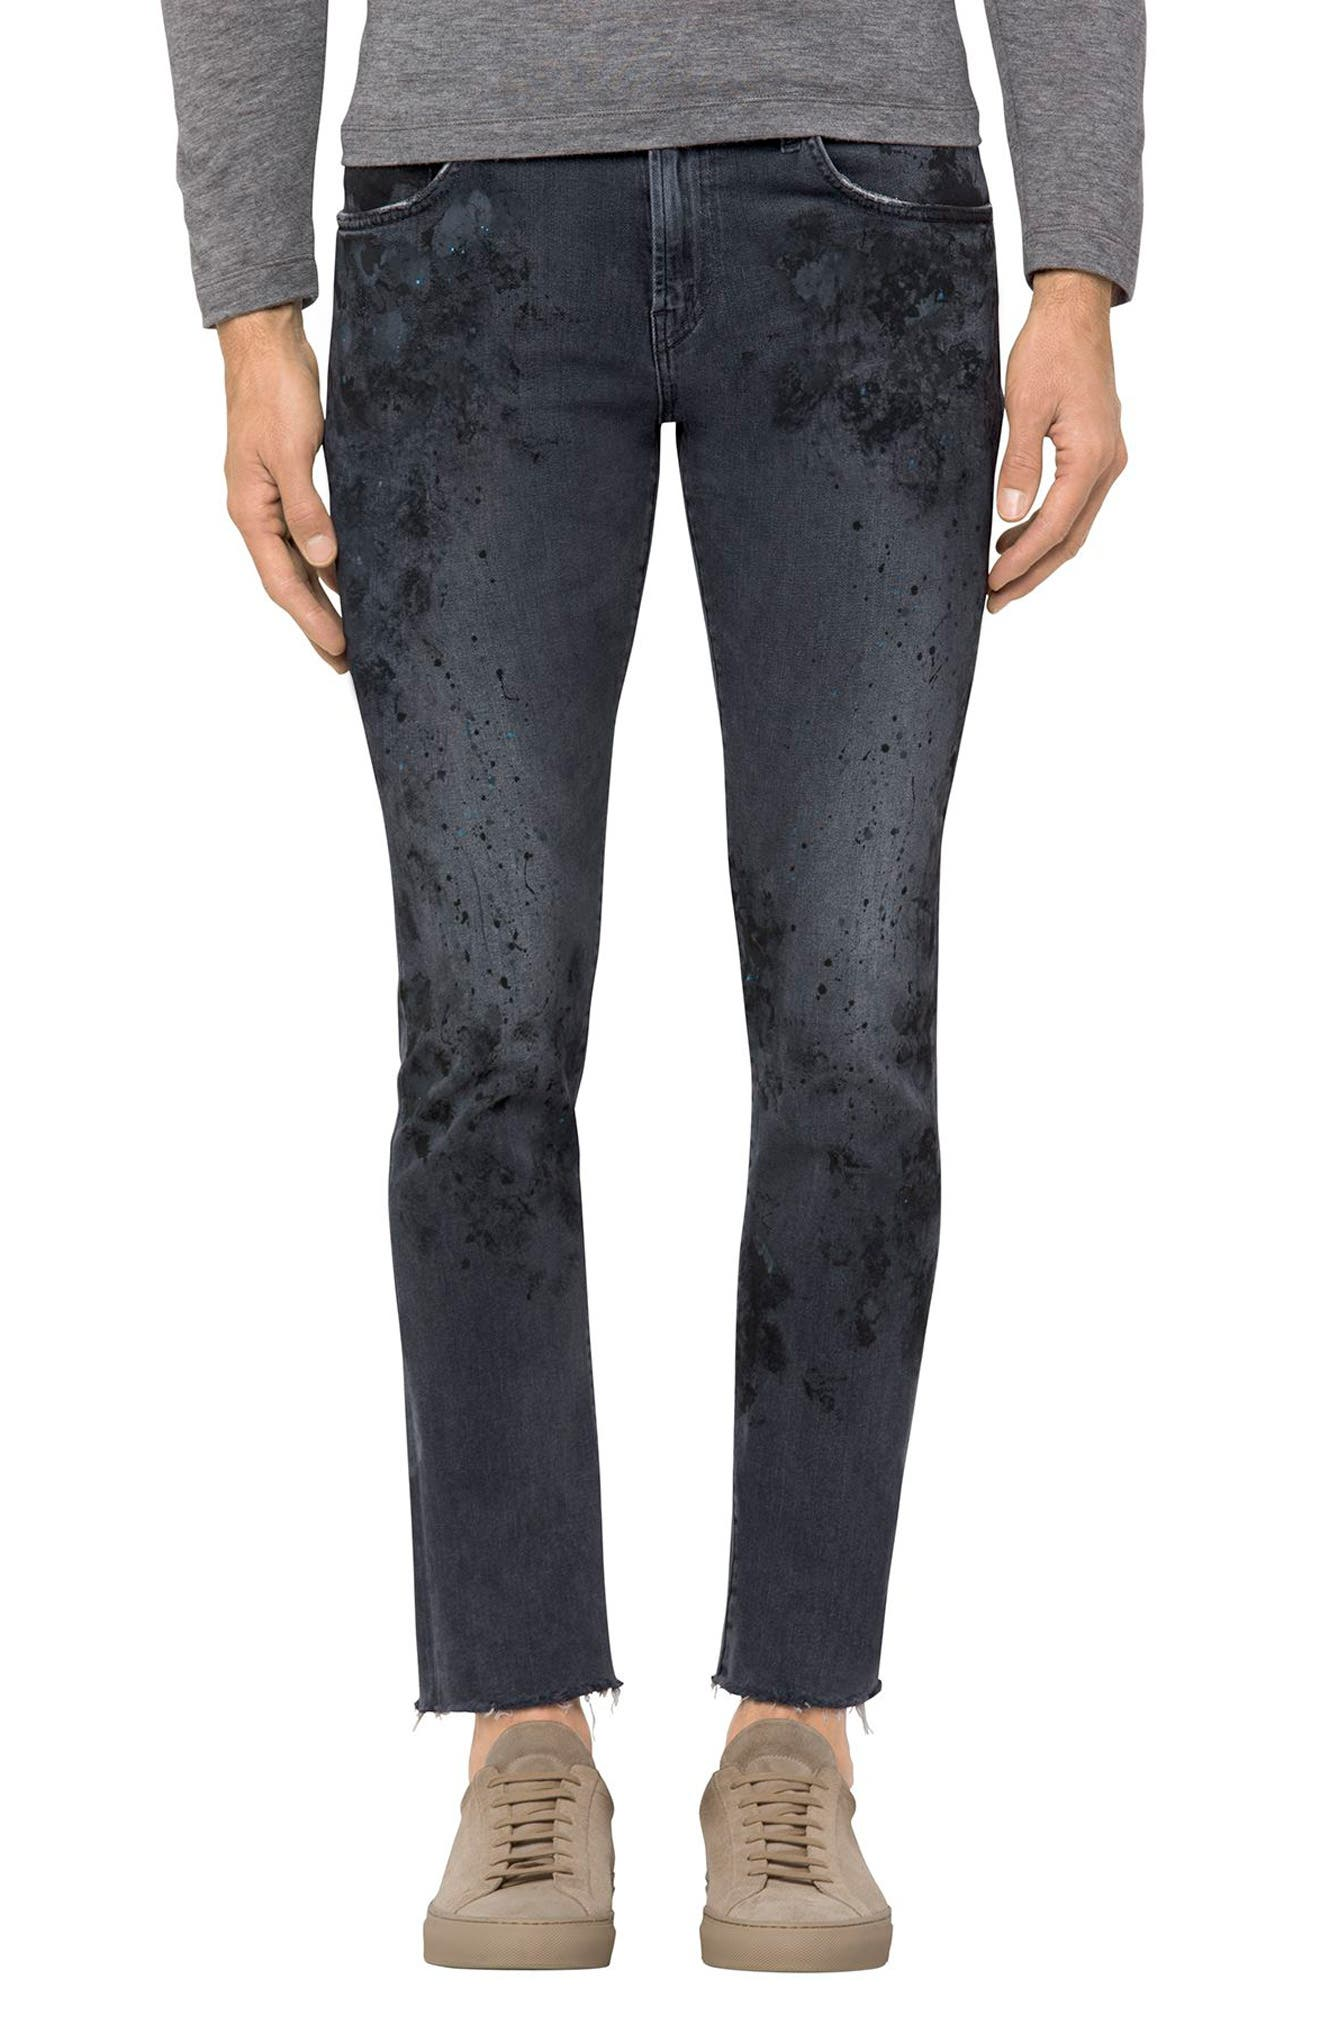 Alternate Image 1 Selected - J Brand Mick Skinny Fit Jeans (Vitreous)